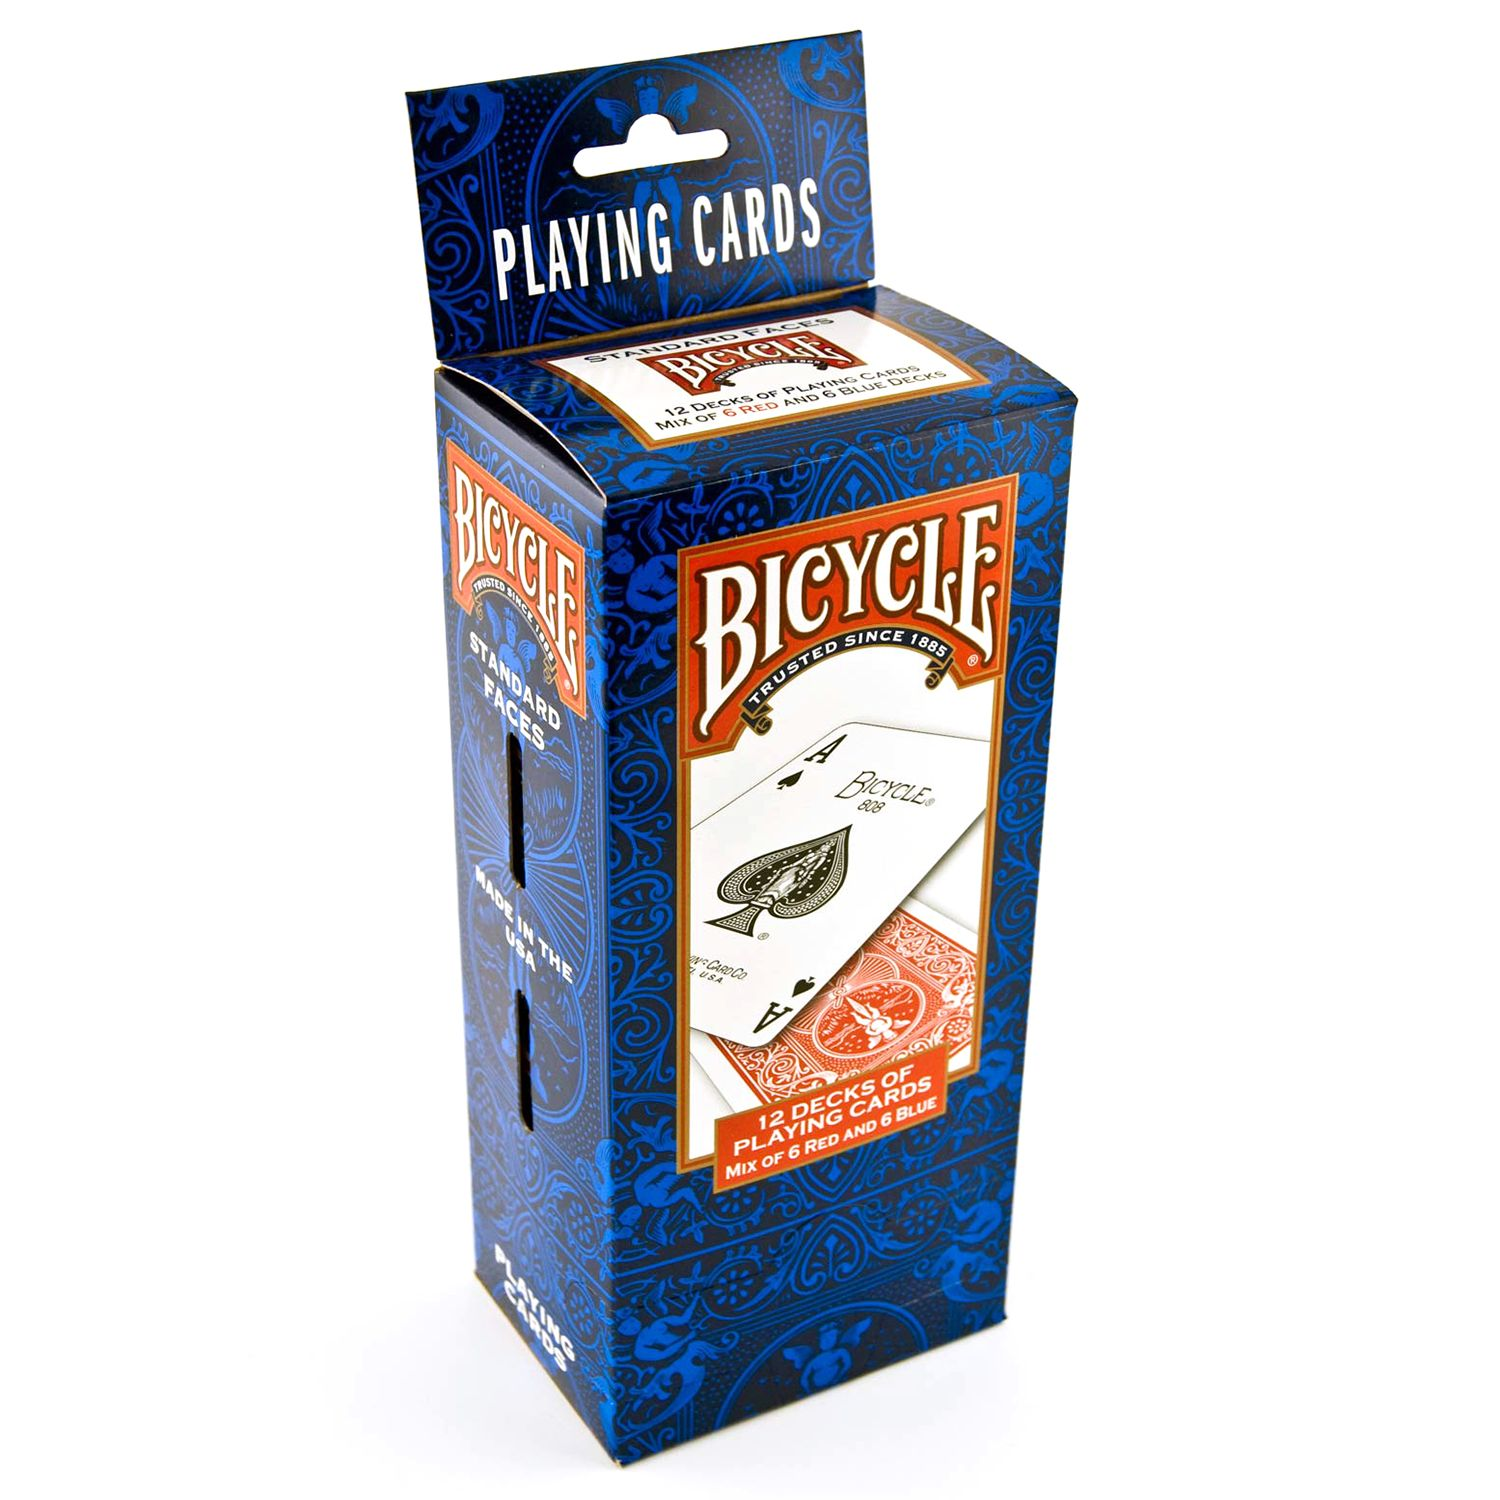 Bicycle Poker Size Standard Index Playing Cards, 12 Deck Player's Pack by